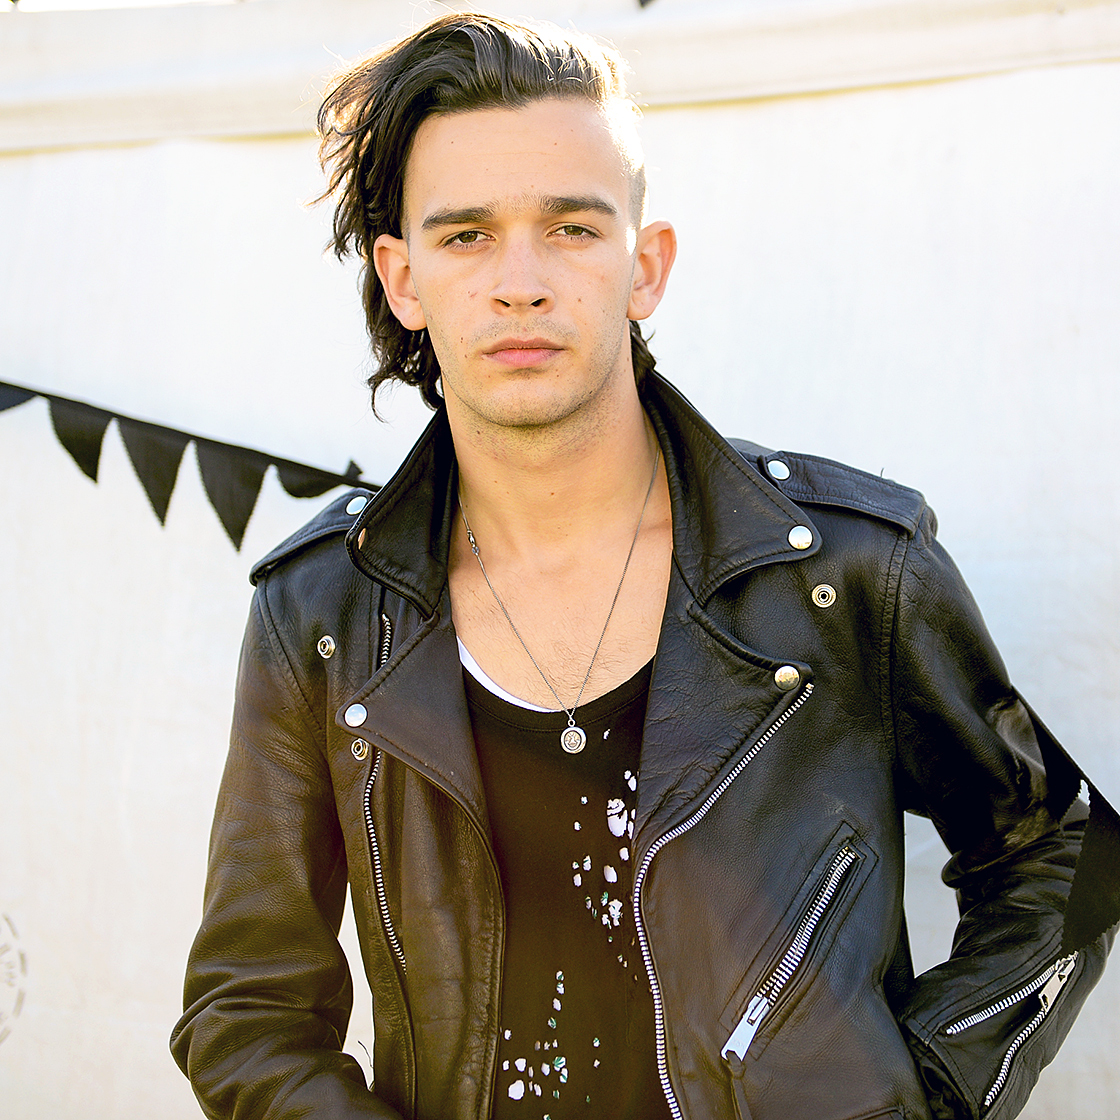 Sources exclusively revealed to Us that Swift spent time with The 1975's Matt Healy in late 2014. Swift met Healy backstage at one of his band's concerts, and the two hit it off.